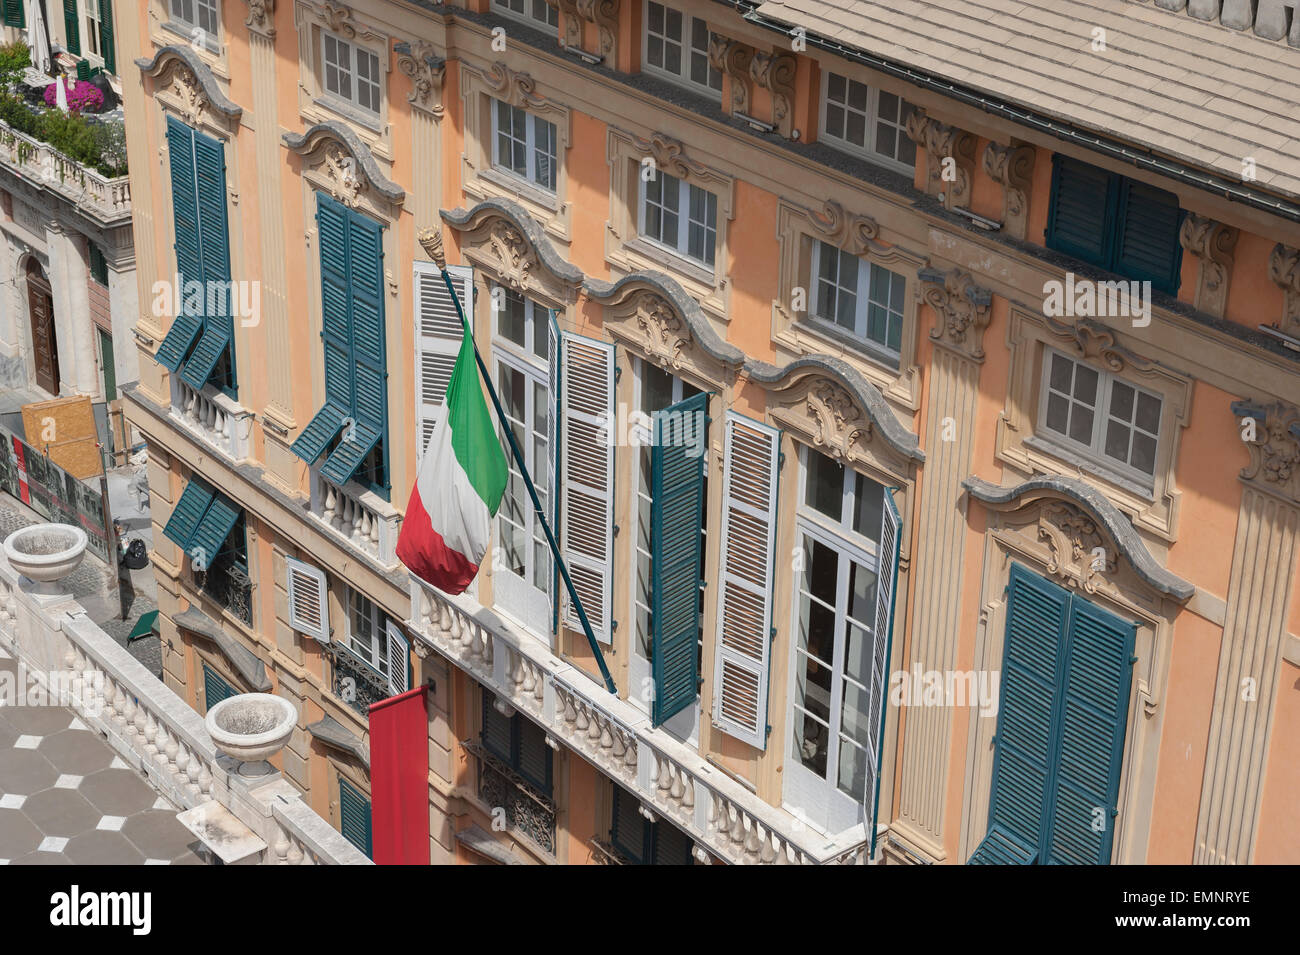 Genoa museum, view of the front of the Palazzo Bianco in the center of Genova, Liguria, Italy. - Stock Image